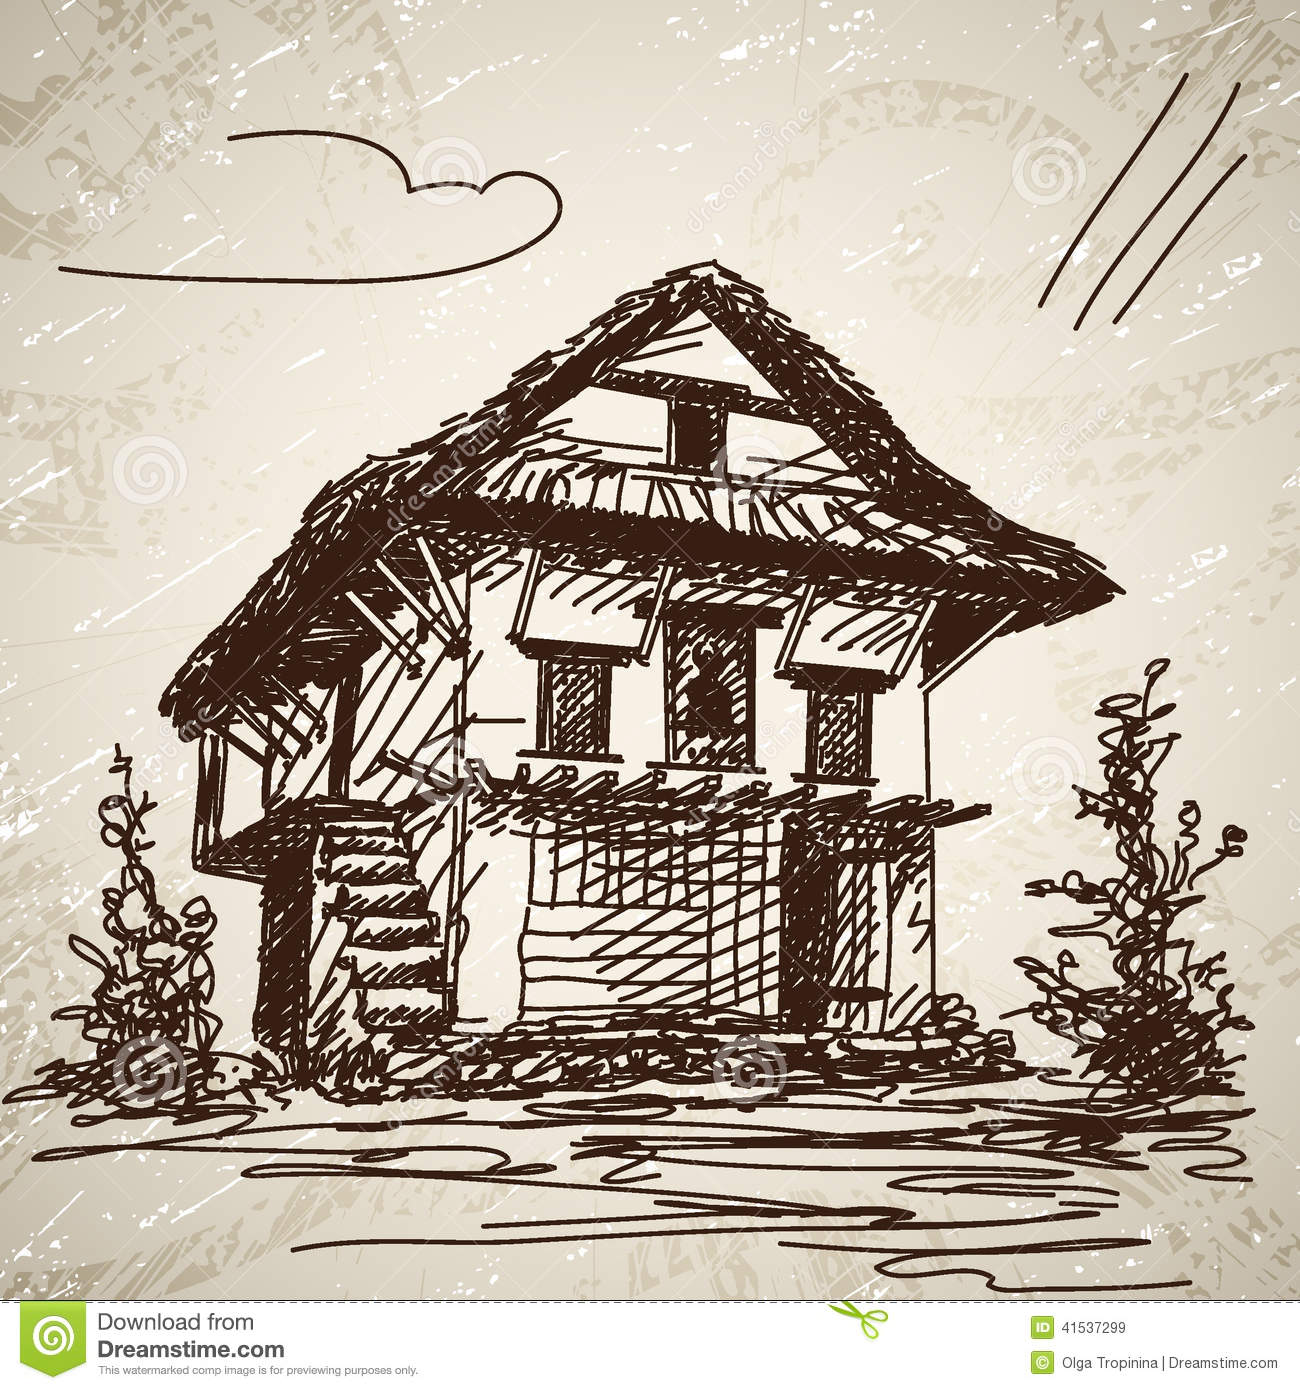 Drawn hand house illustration nepali